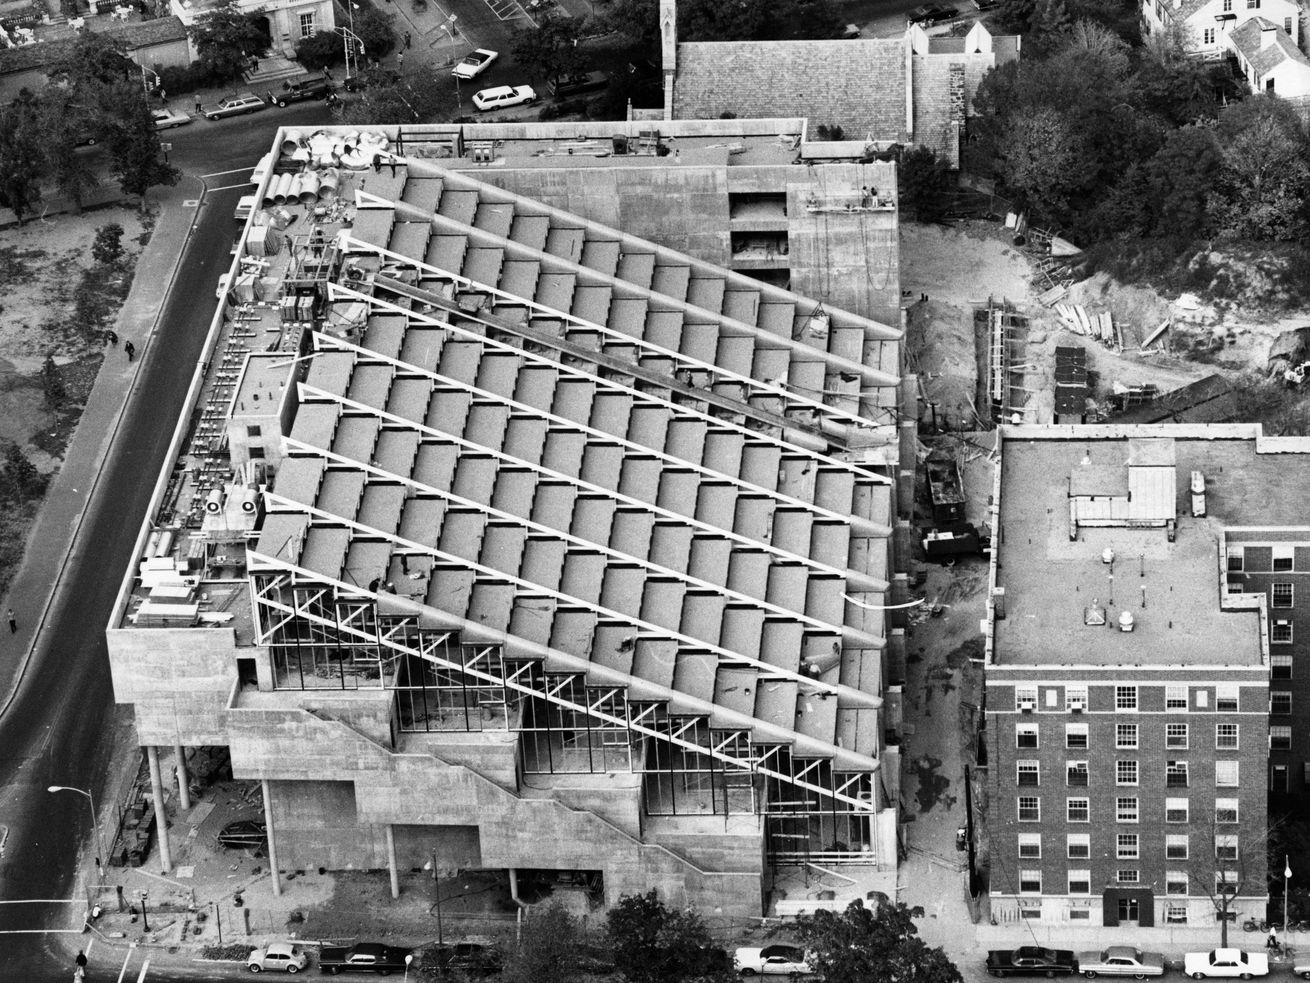 An archival black-and-white aerial photograph of a concrete building with a sloped roof